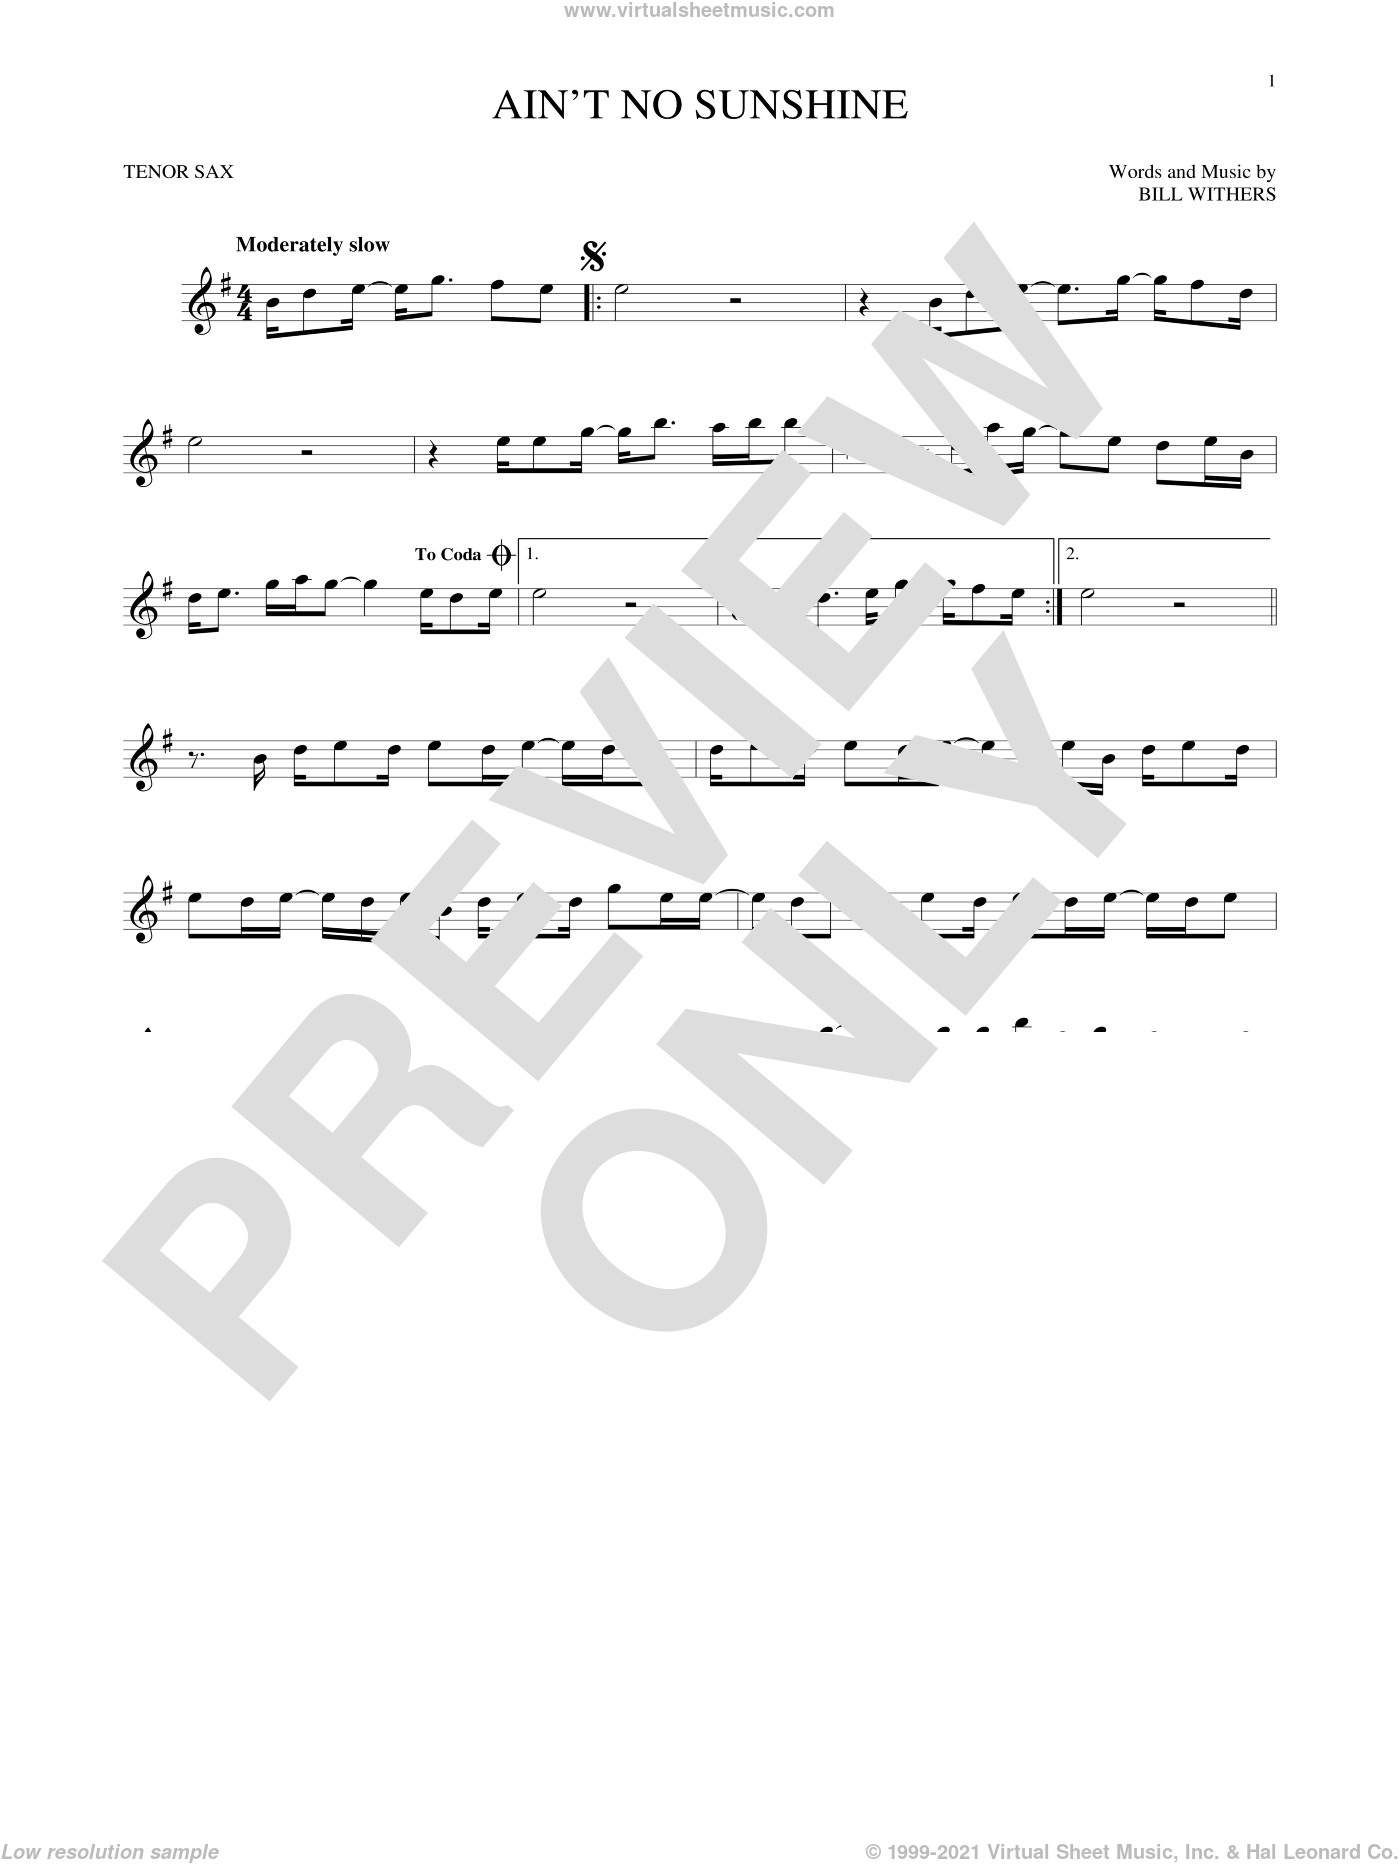 Ain't No Sunshine sheet music for tenor saxophone solo by Bill Withers, intermediate skill level